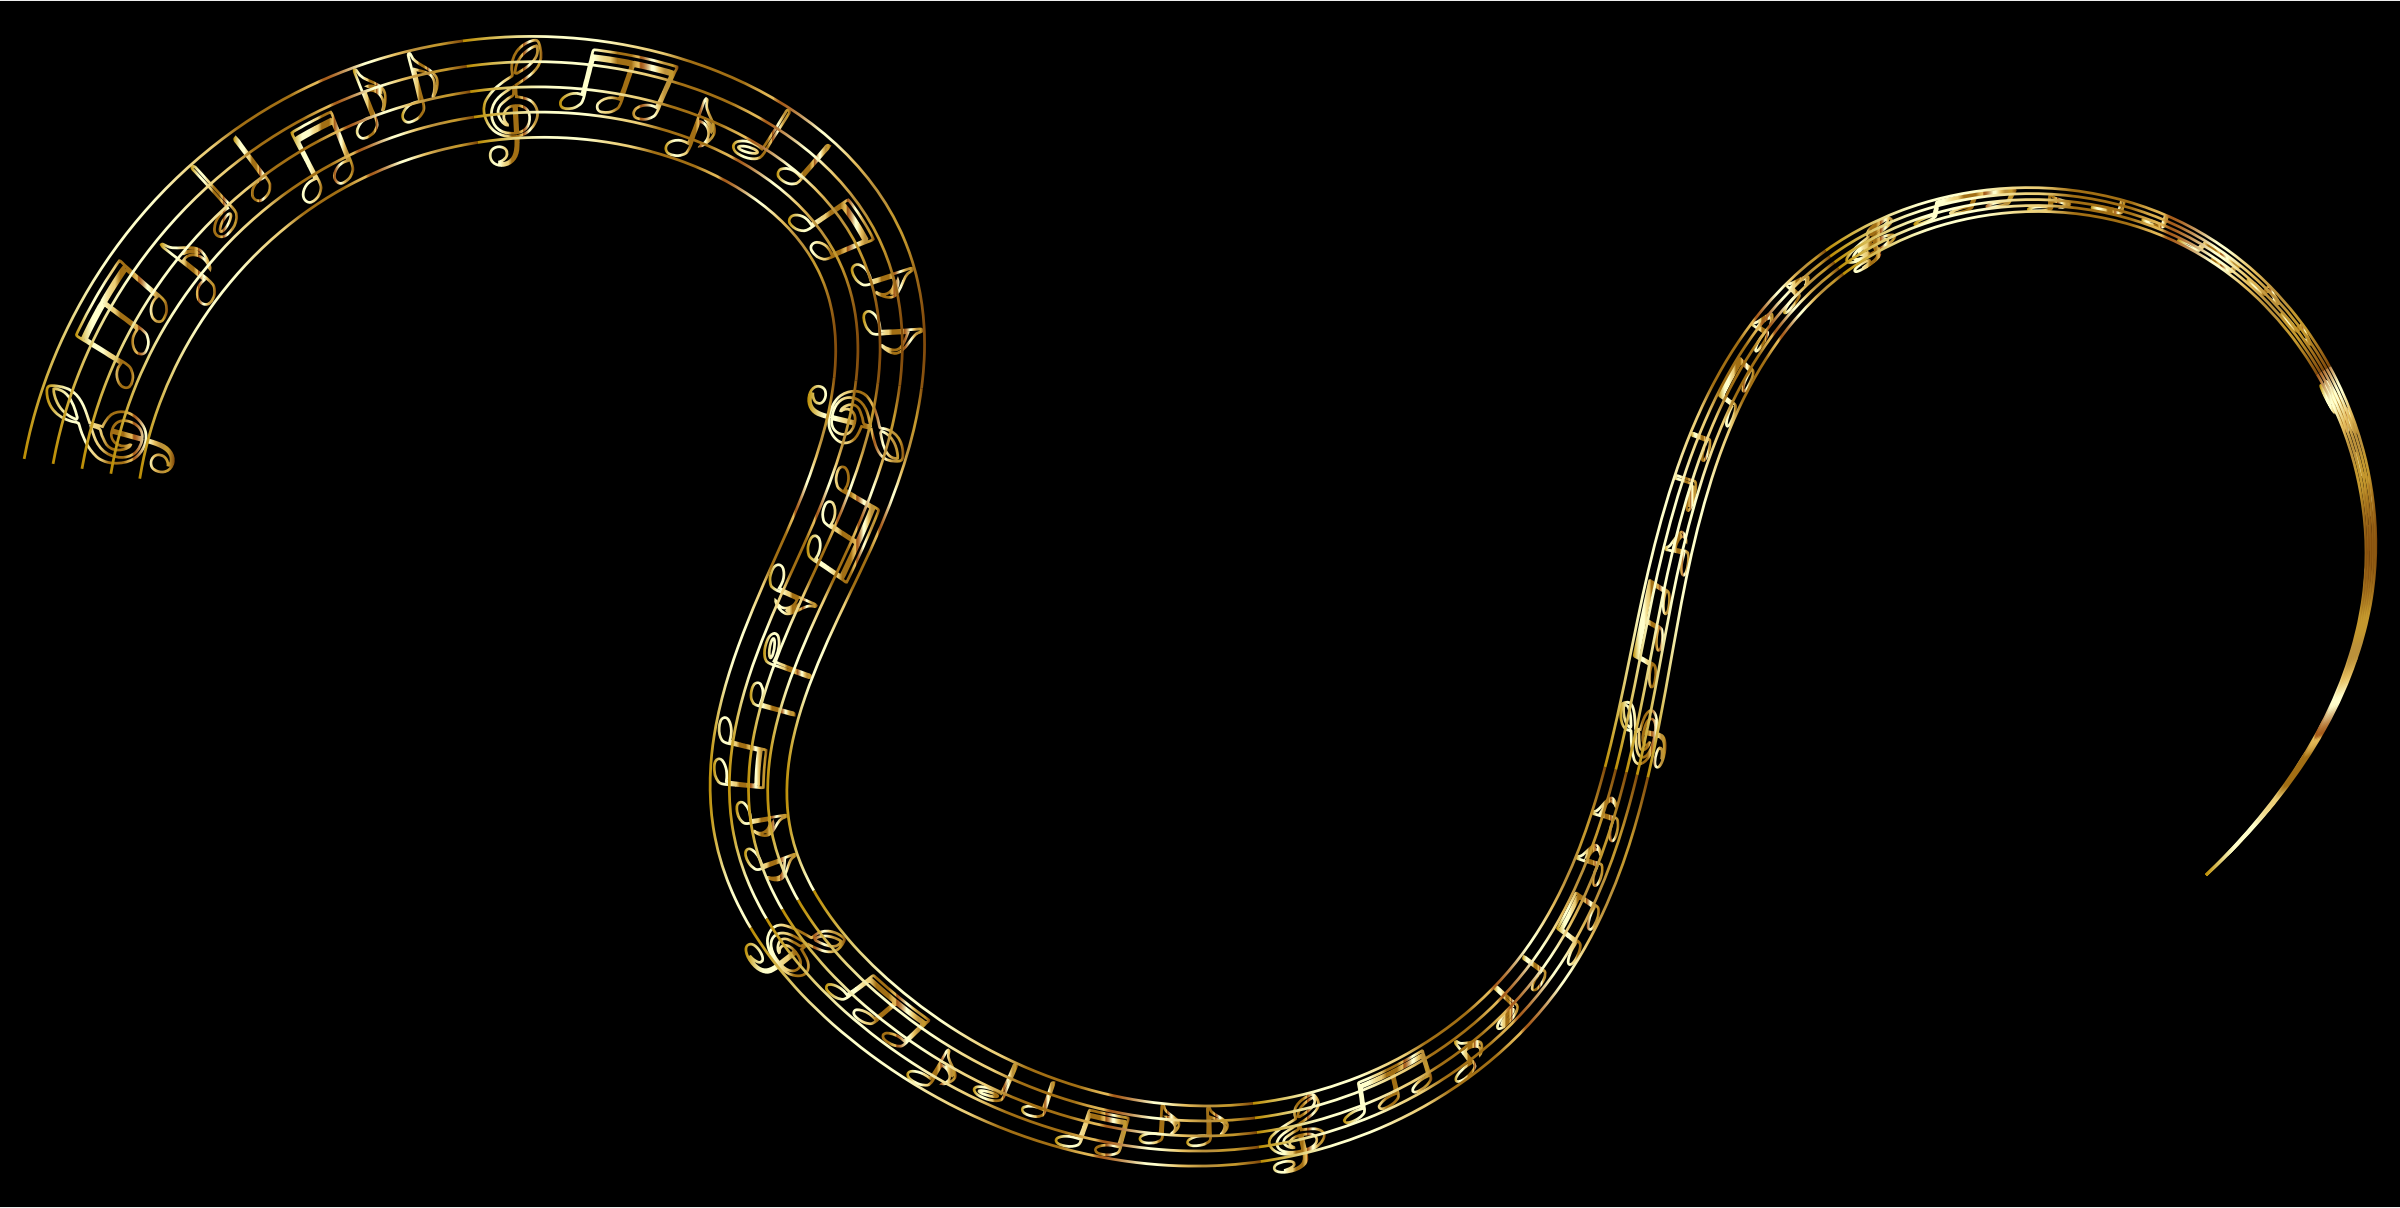 Golden Musical Flourish by GDJ